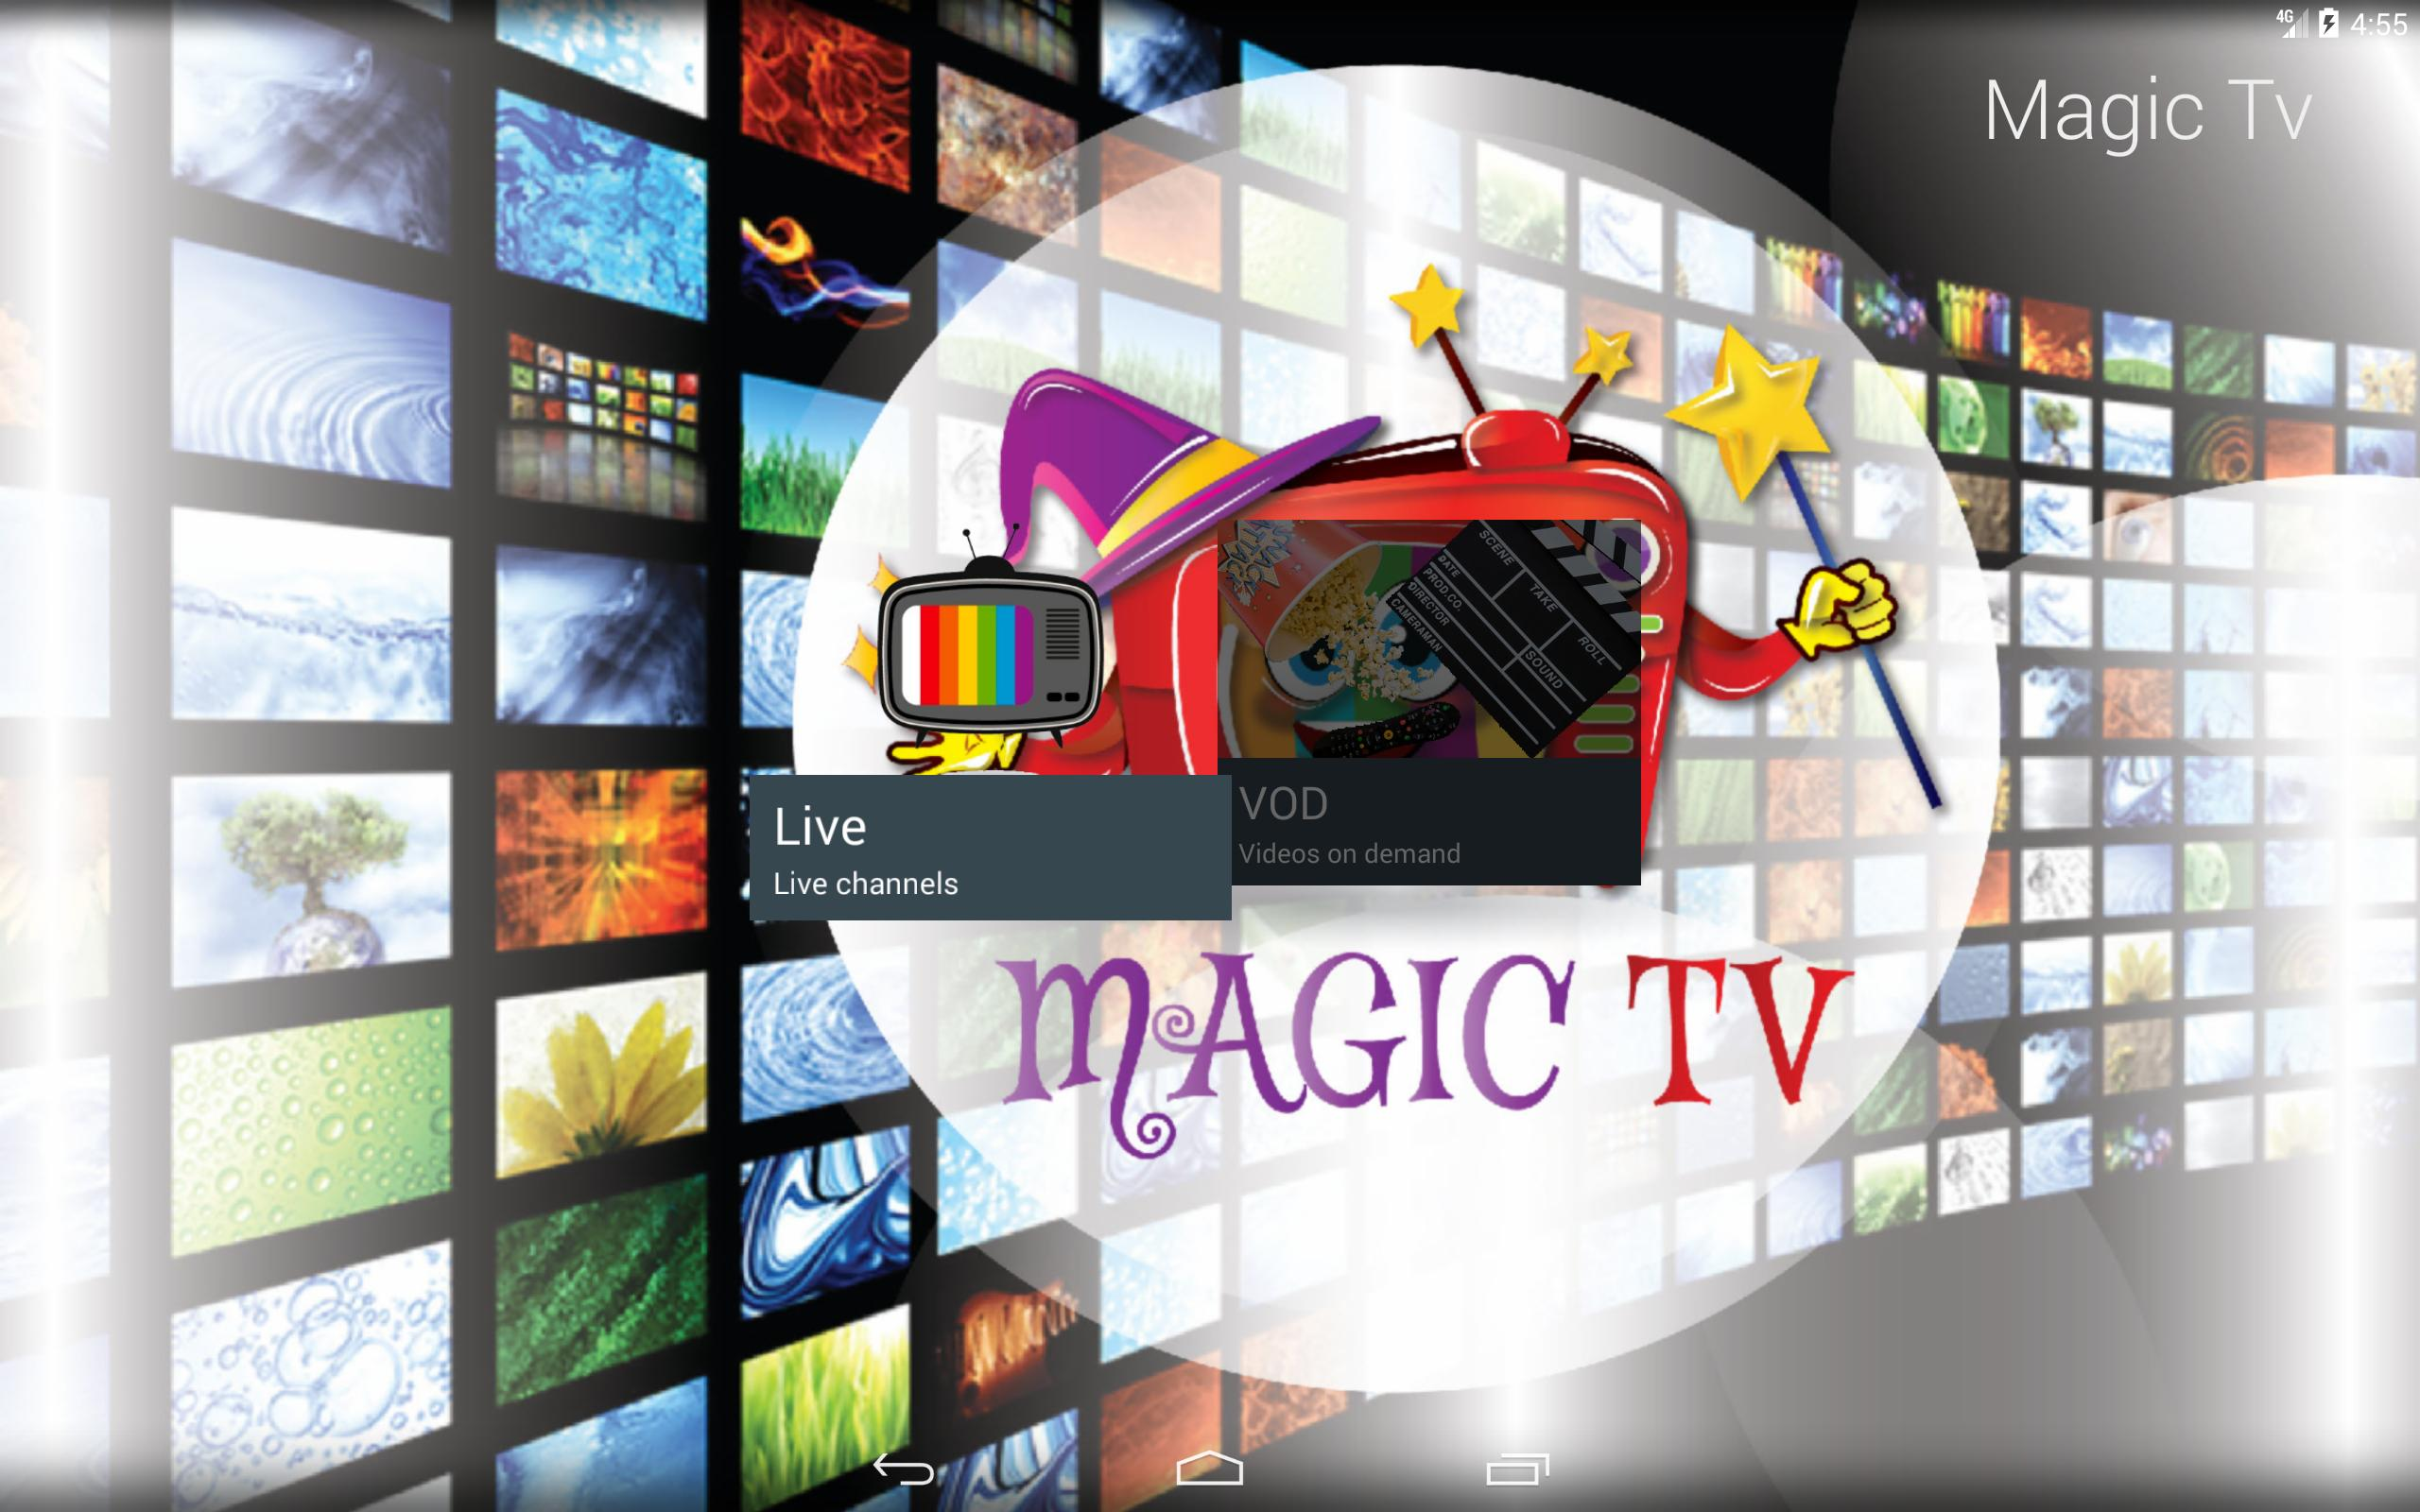 Magic TV for Android - APK Download